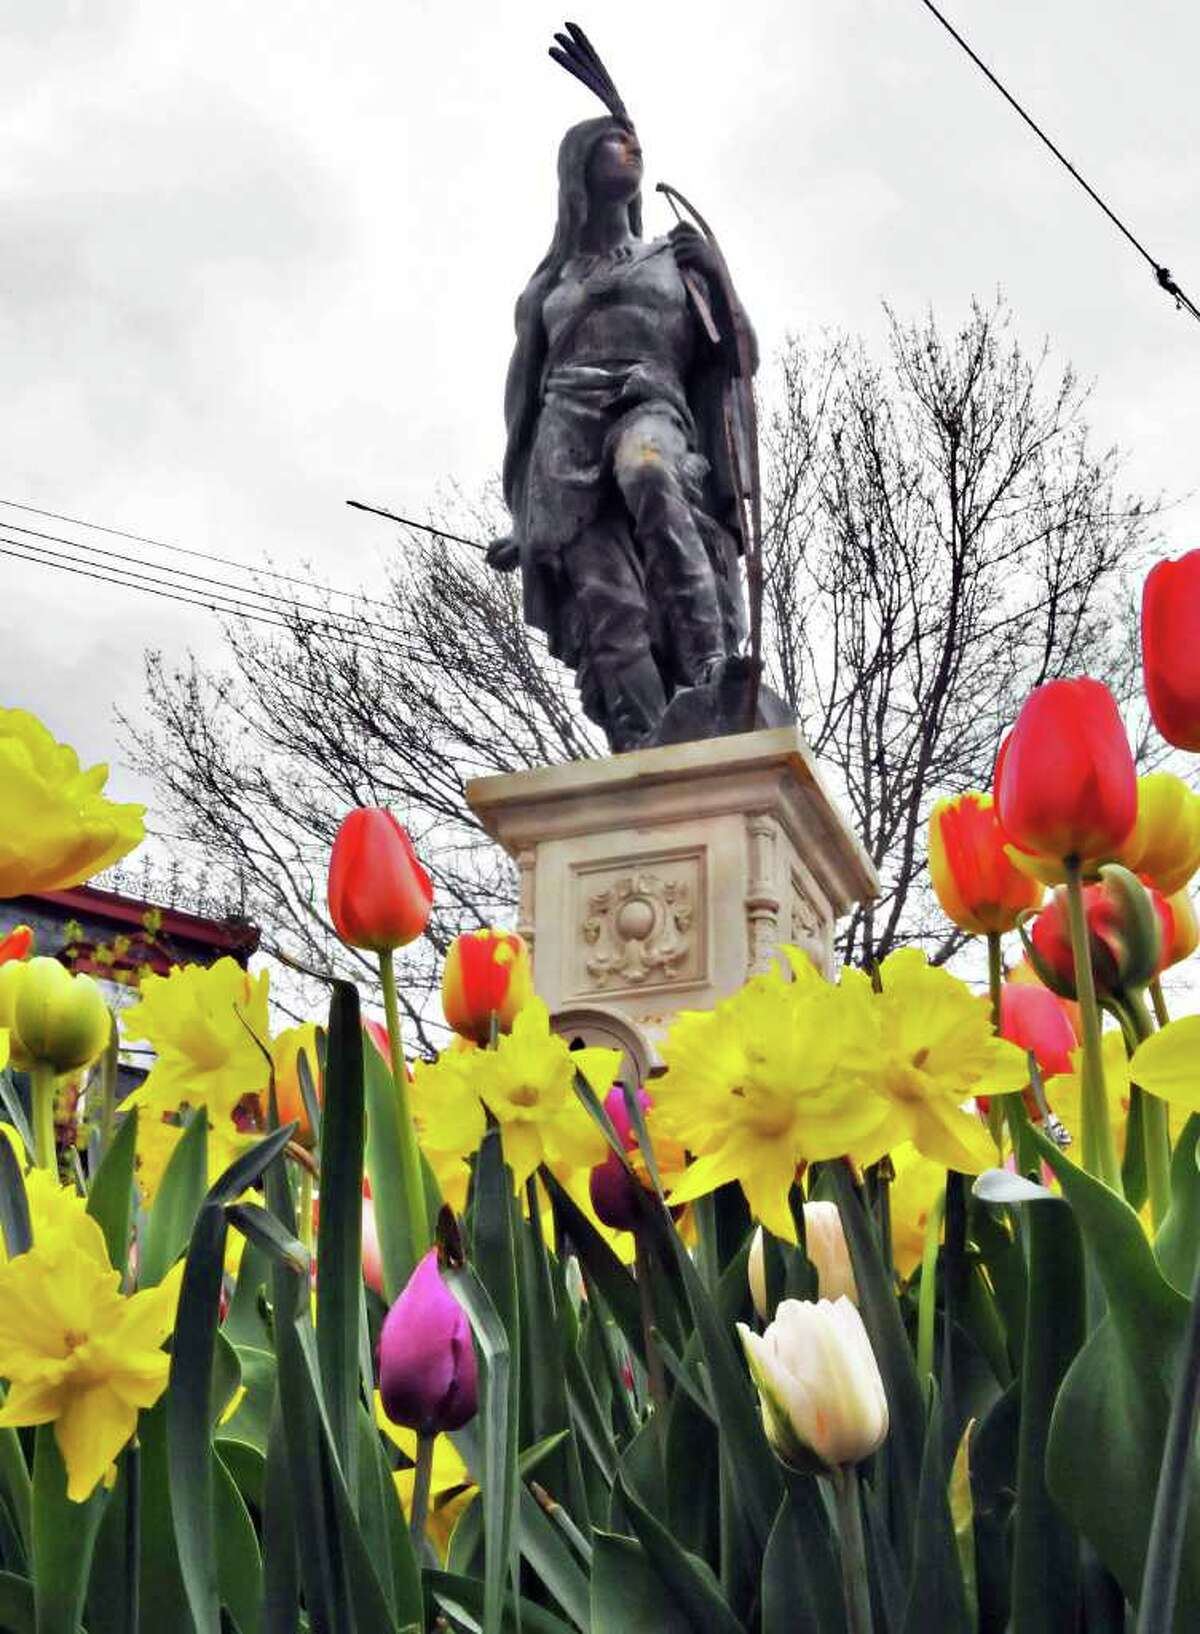 """Spring flowers in bloom around the statue of """"Lawrence the Indian"""" in Schenectady's historic Stockade neighborhood Friday afternoon April 29, 2011. (John Carl D'Annibale / Times Union)"""